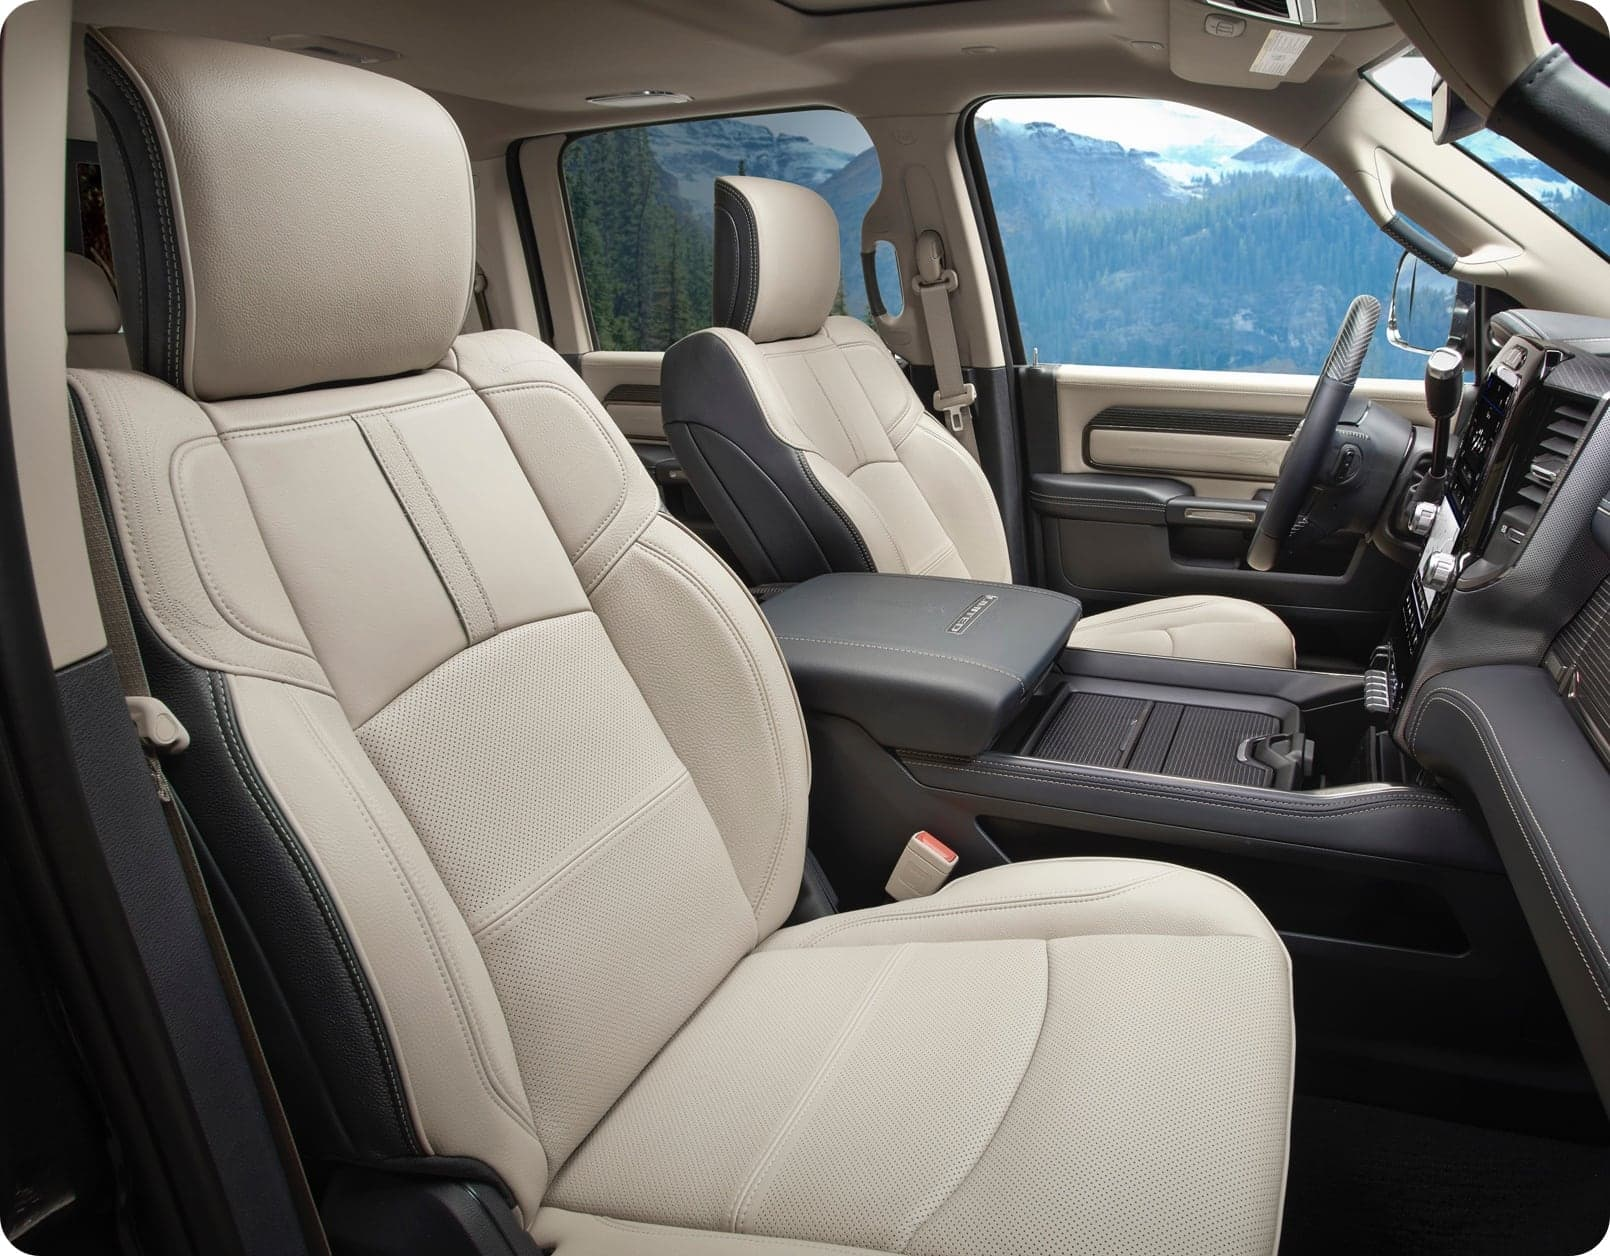 2021 Ram 2500 Interior Available Leather Seats More